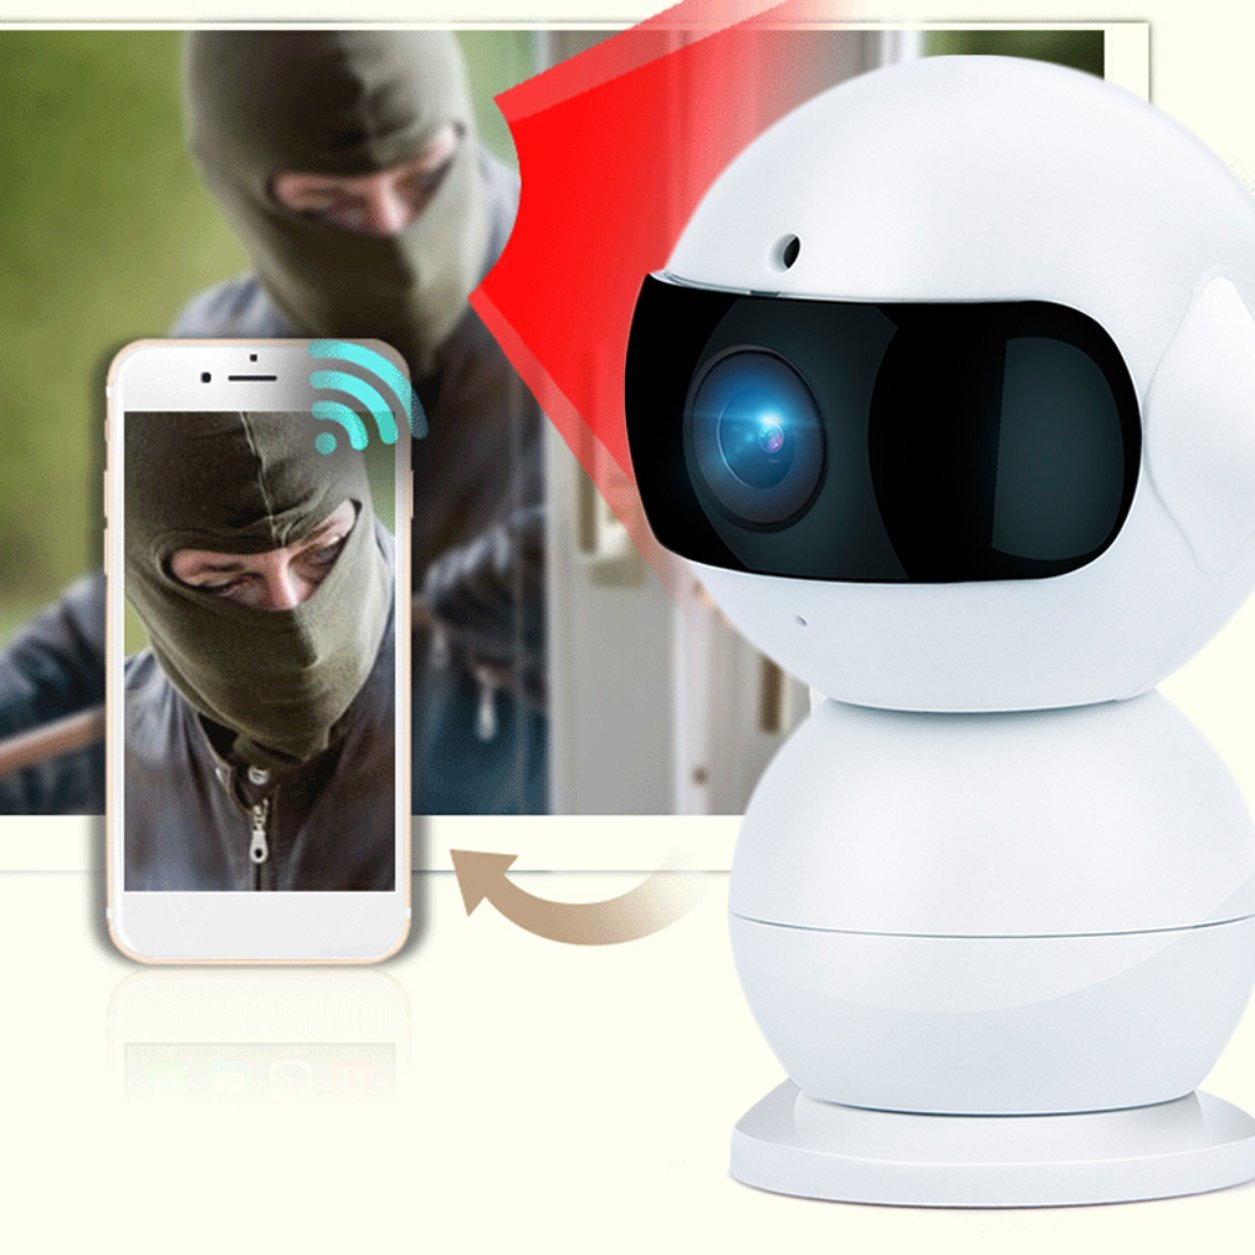 Neue A6 Multi Use HD WIFI IP Smart Camera CARcorder Home Security-Produkt (Farbe  weiß)